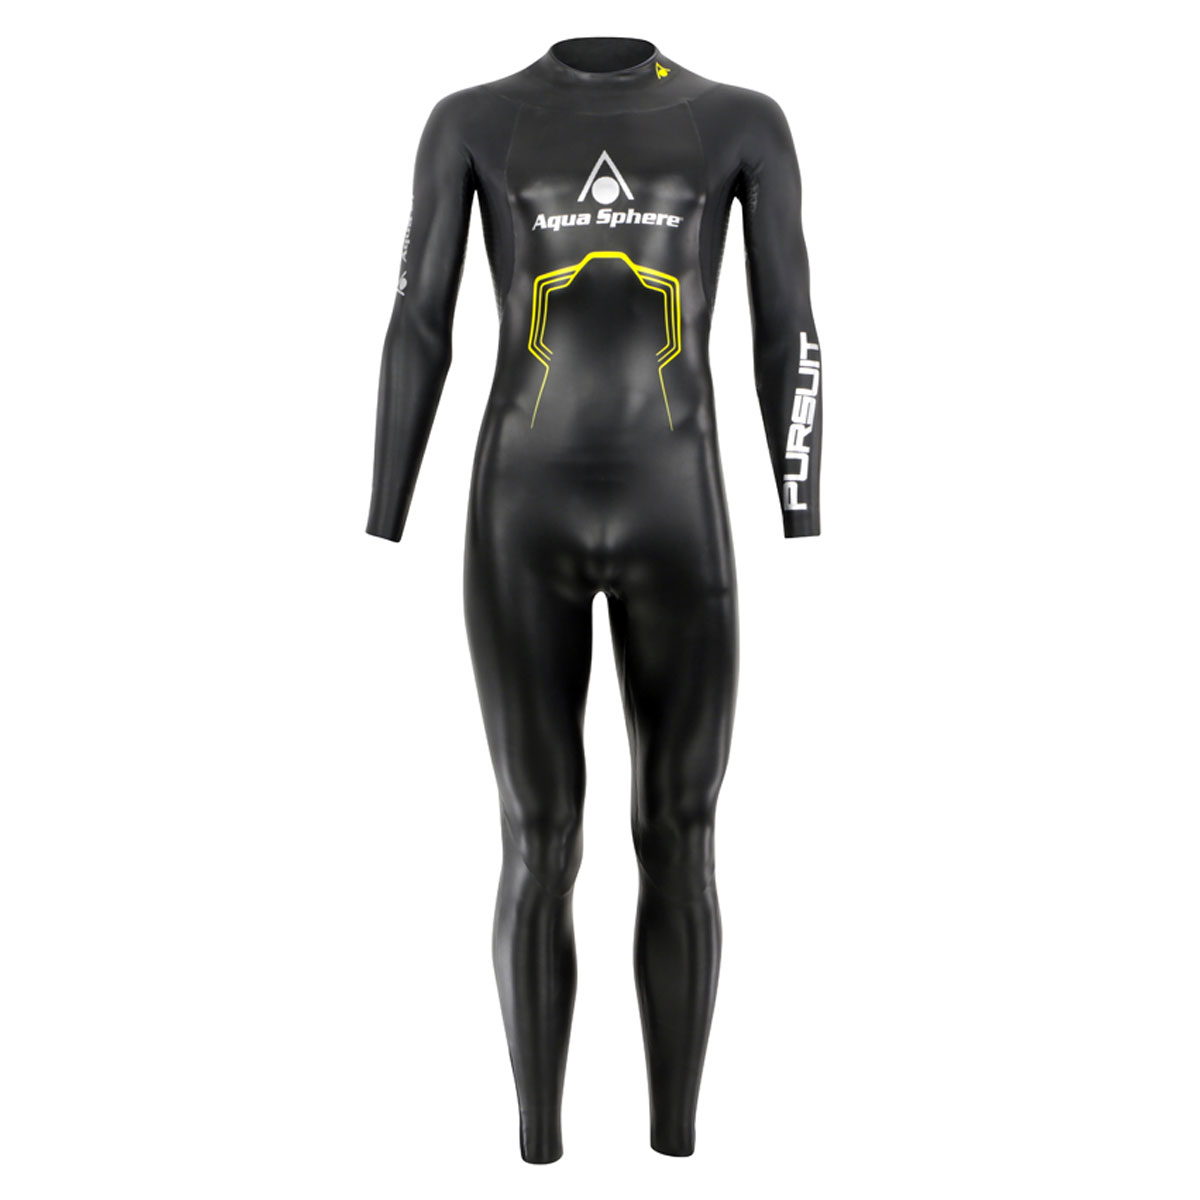 COMBINAISON ISOTHERMIQUE NOIRE (WETSUIT) AQUASPHERE PURSUIT HOMME